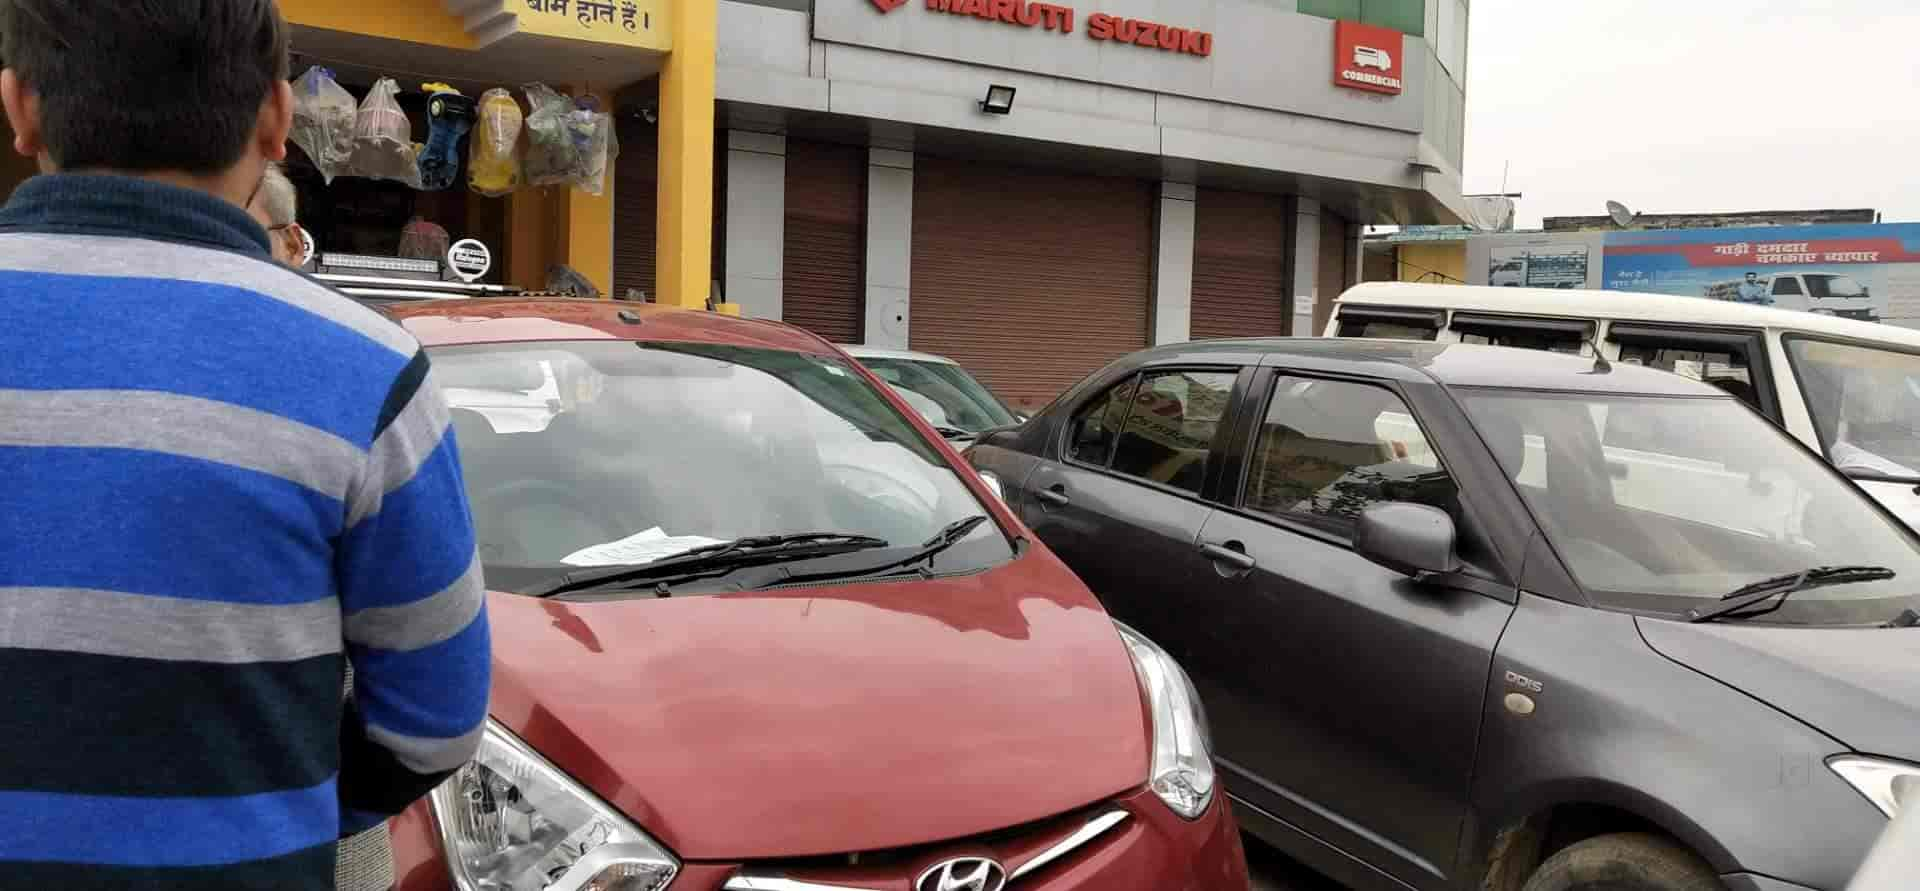 Gupta Car Bazar, Pilibhit Bypass - Second Hand Car Dealers in